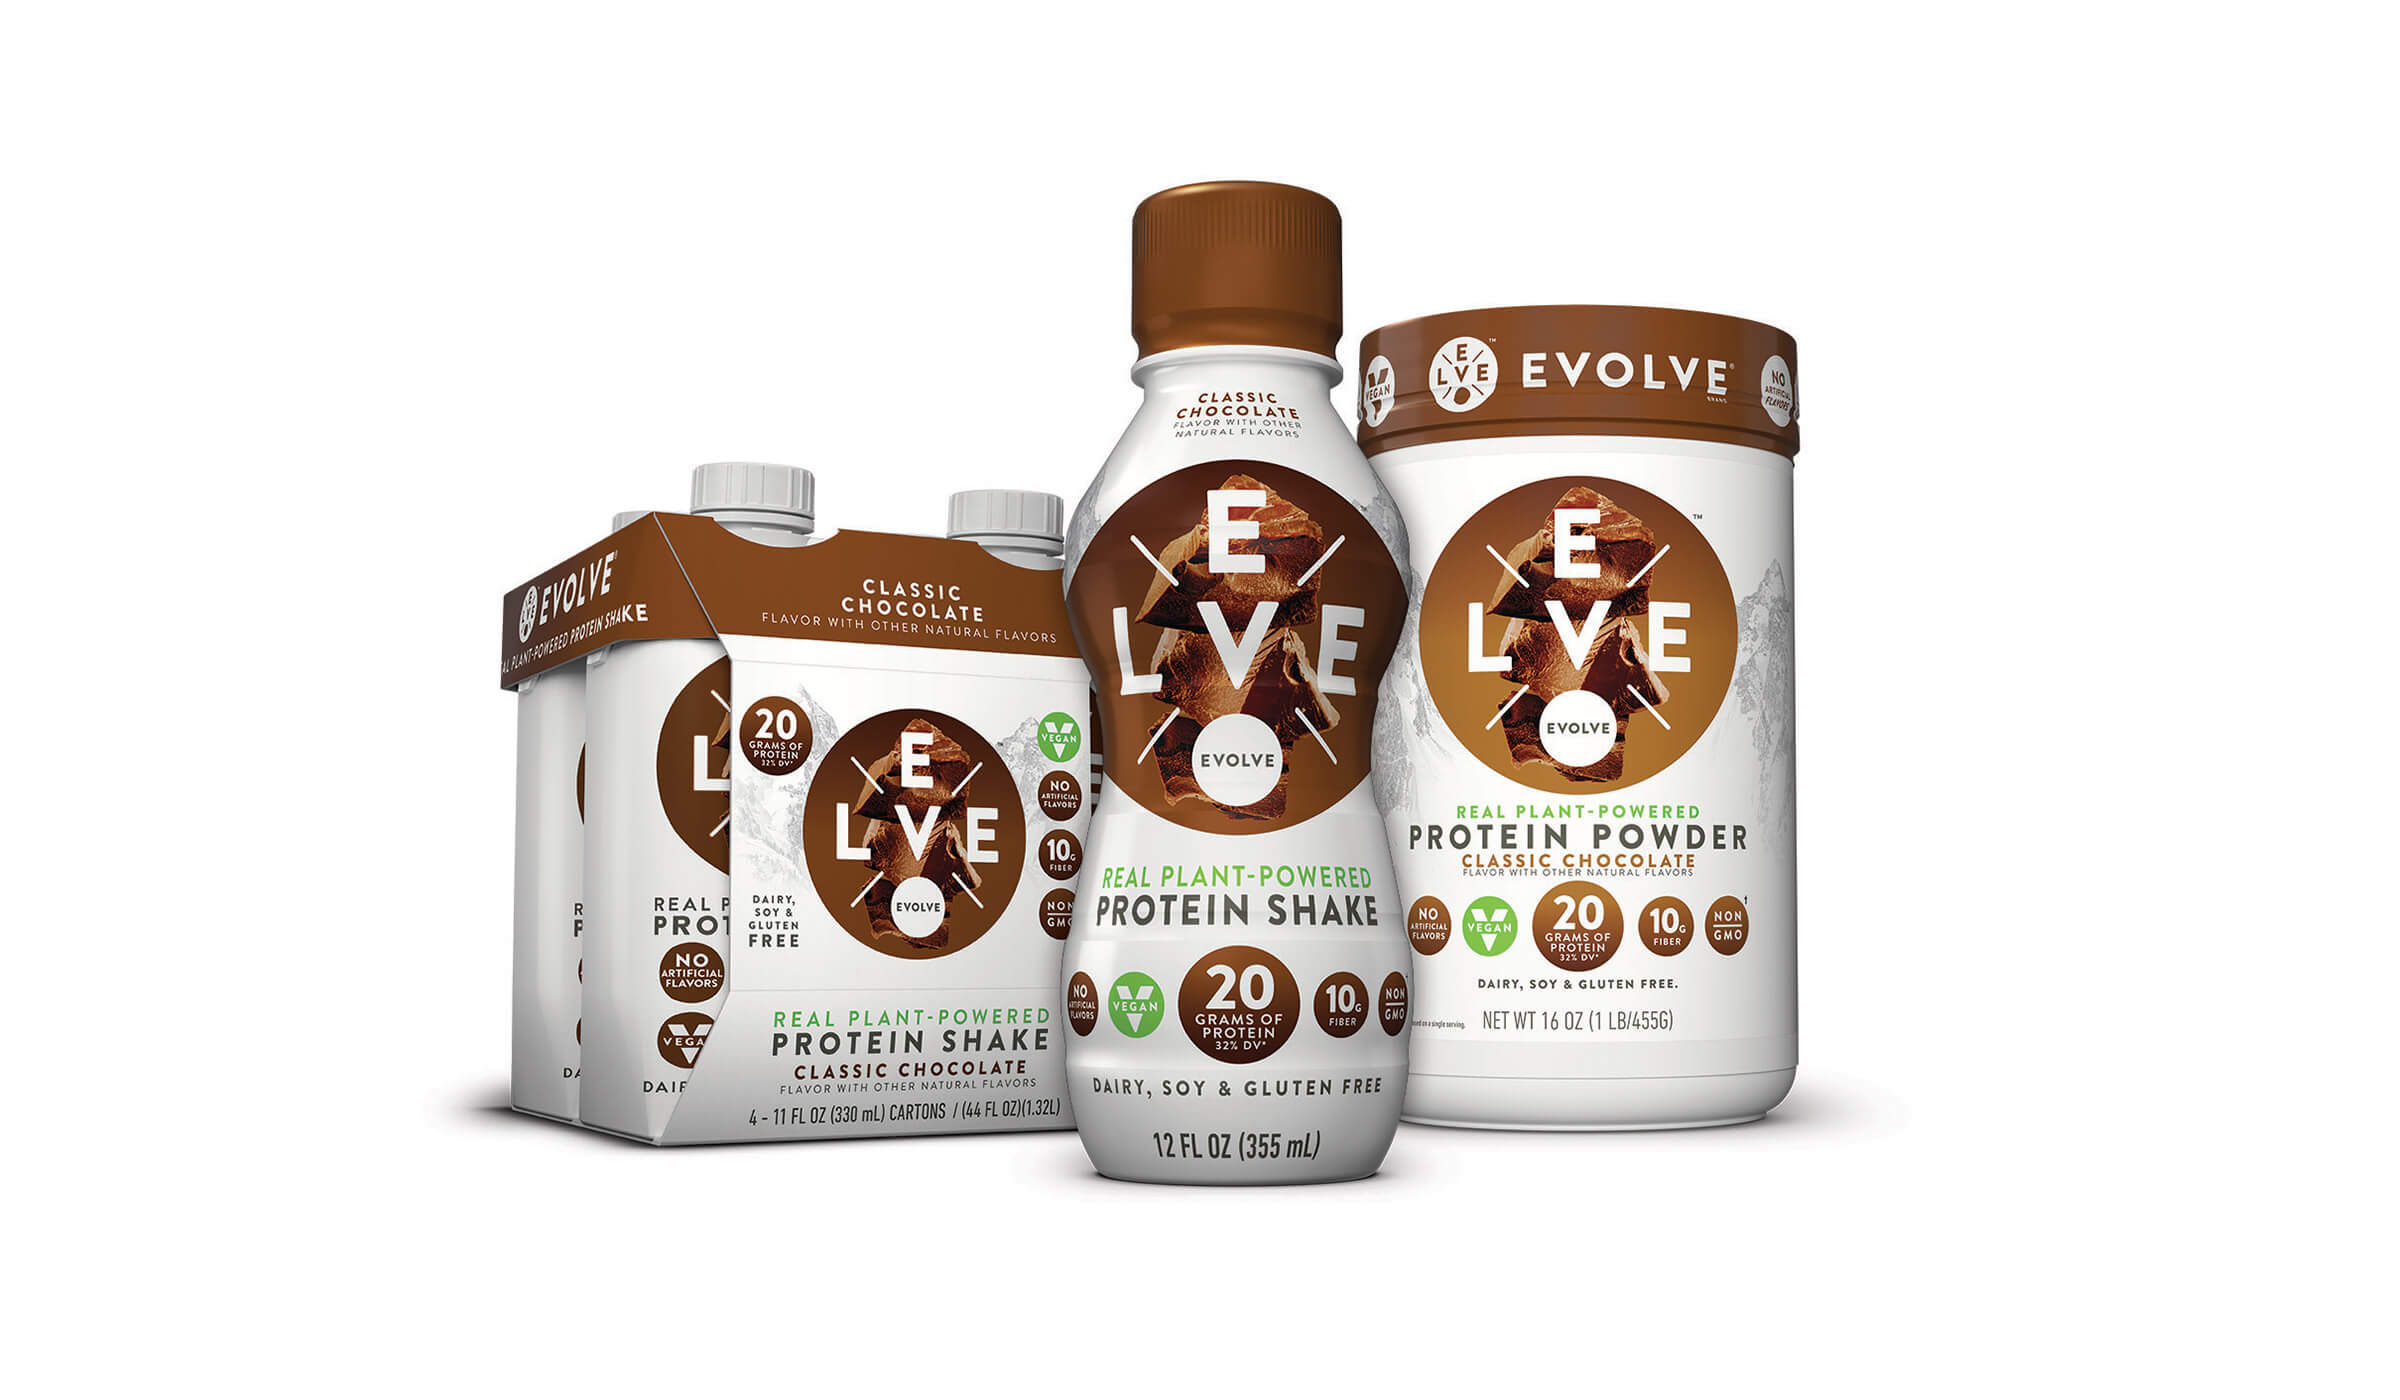 Evolve® products